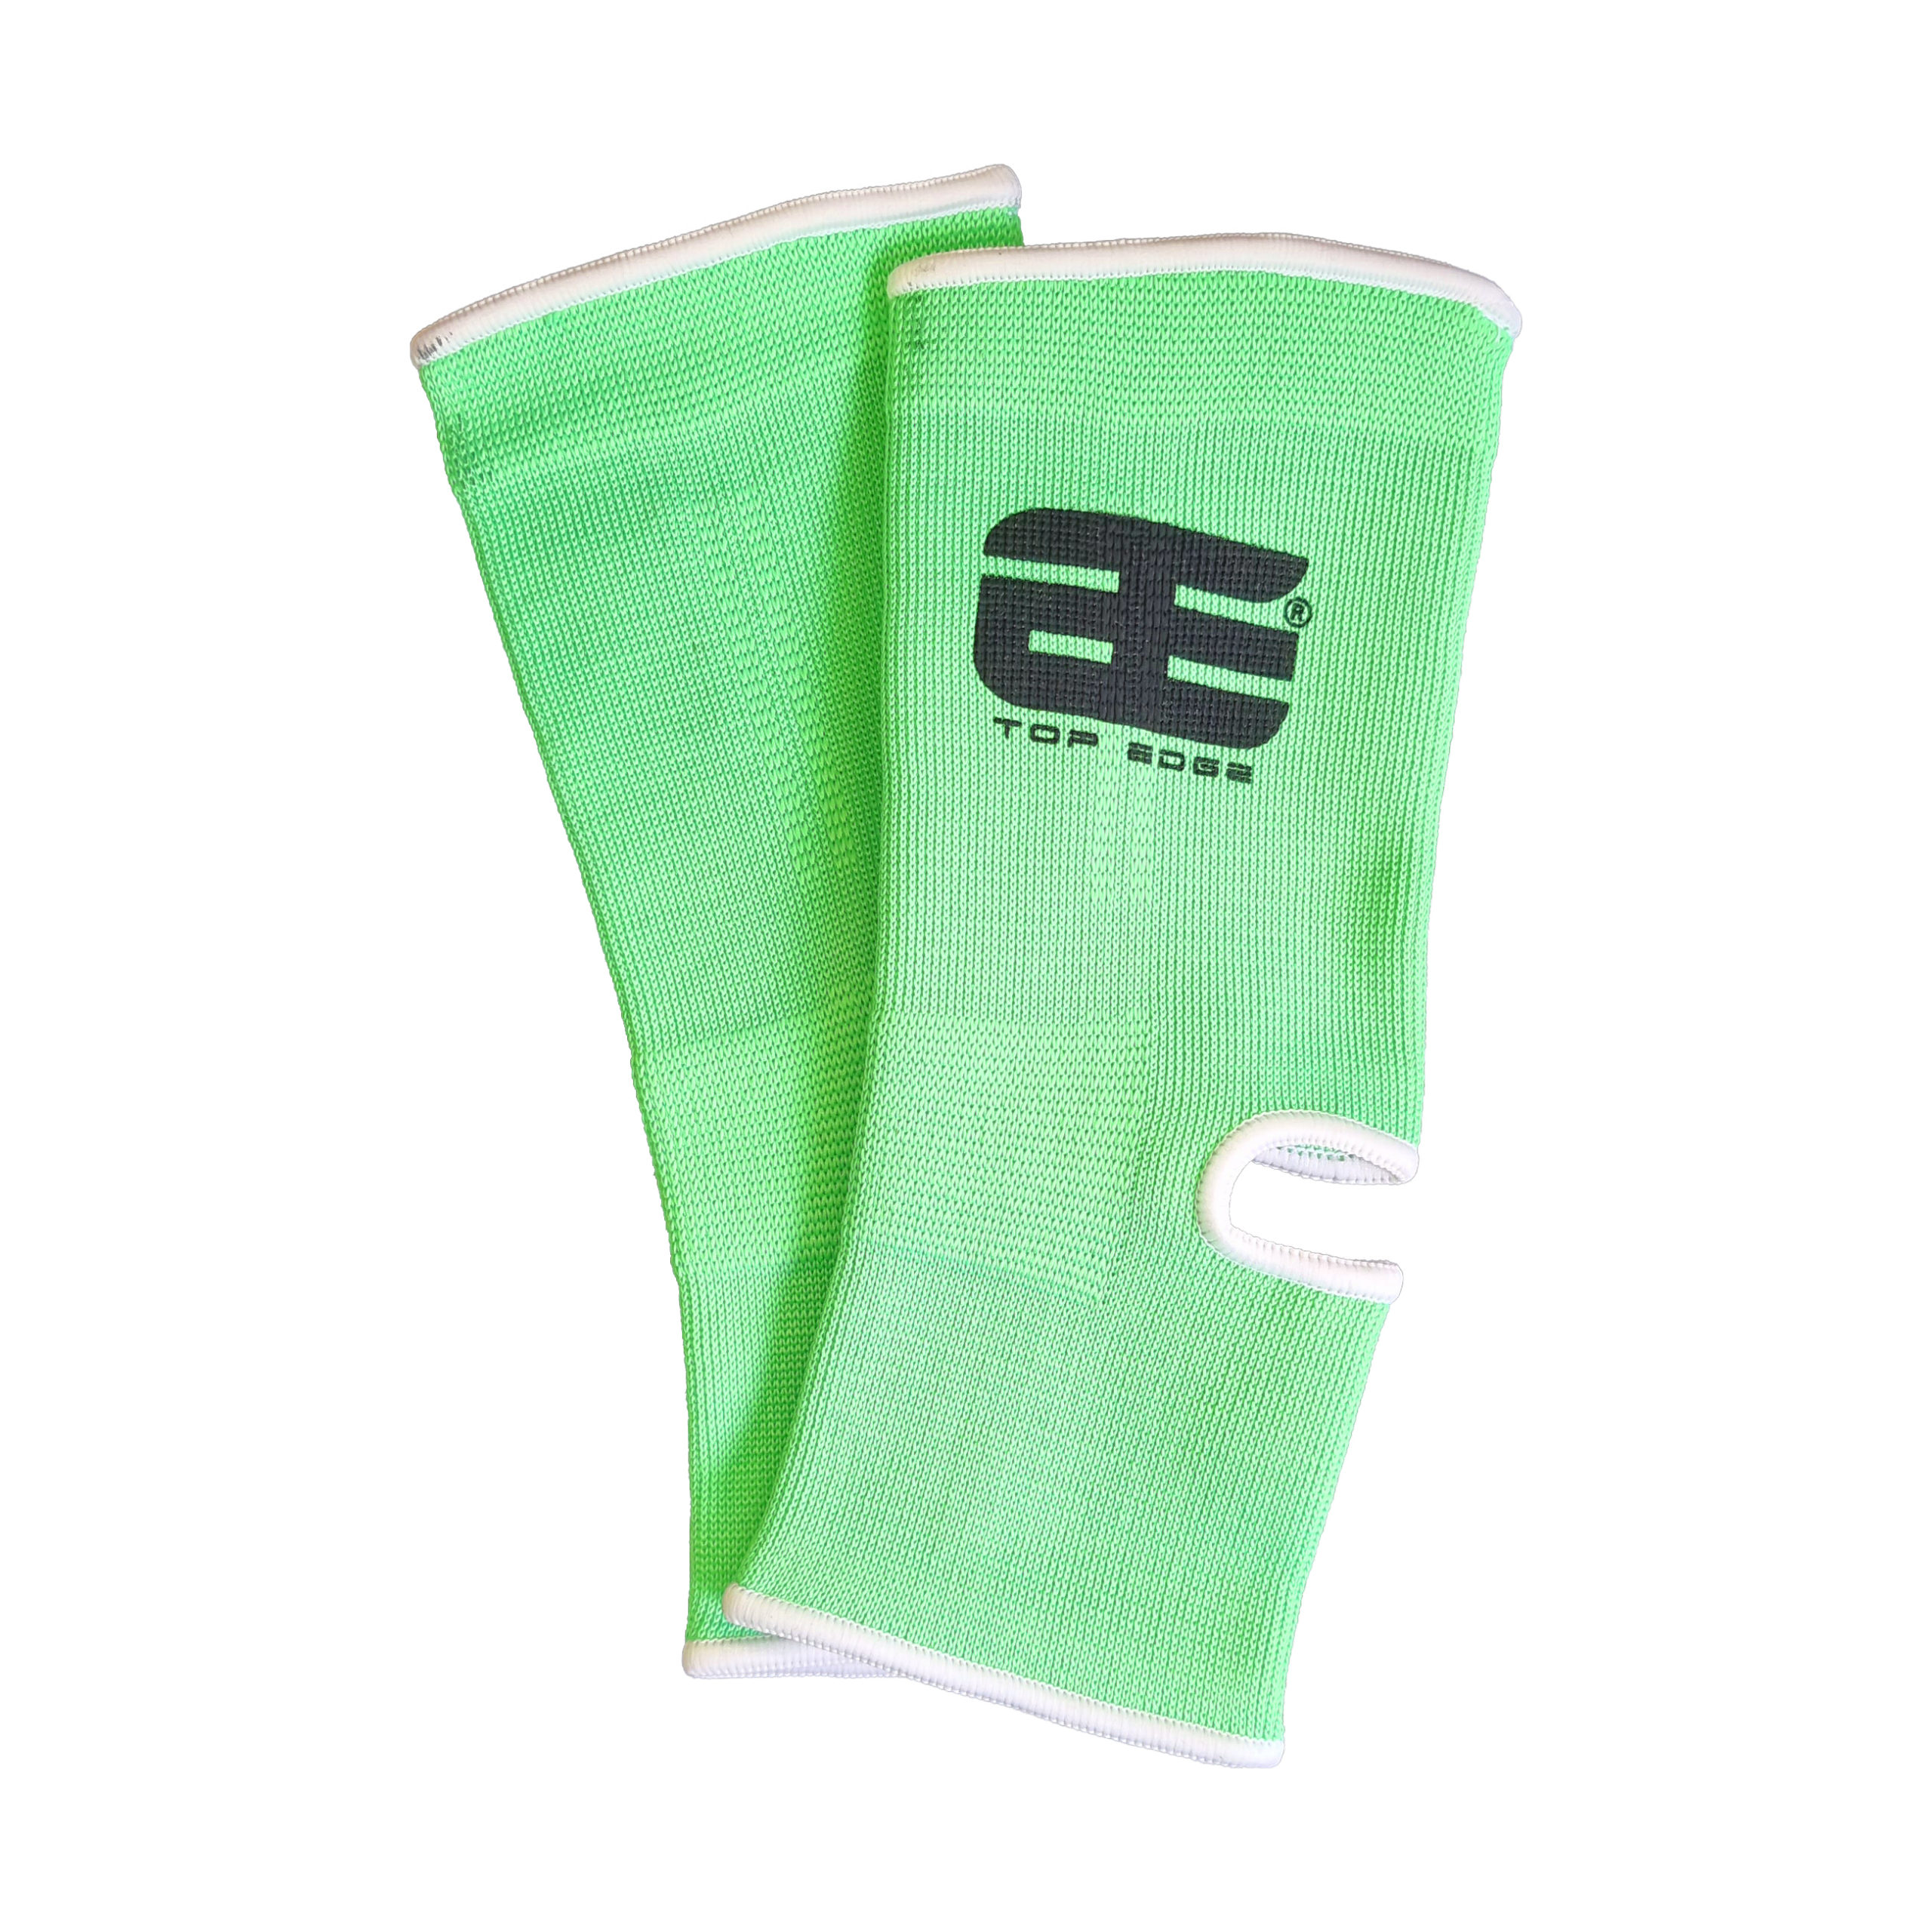 Top Edge Enkelkousen B-Stock - Neon groen